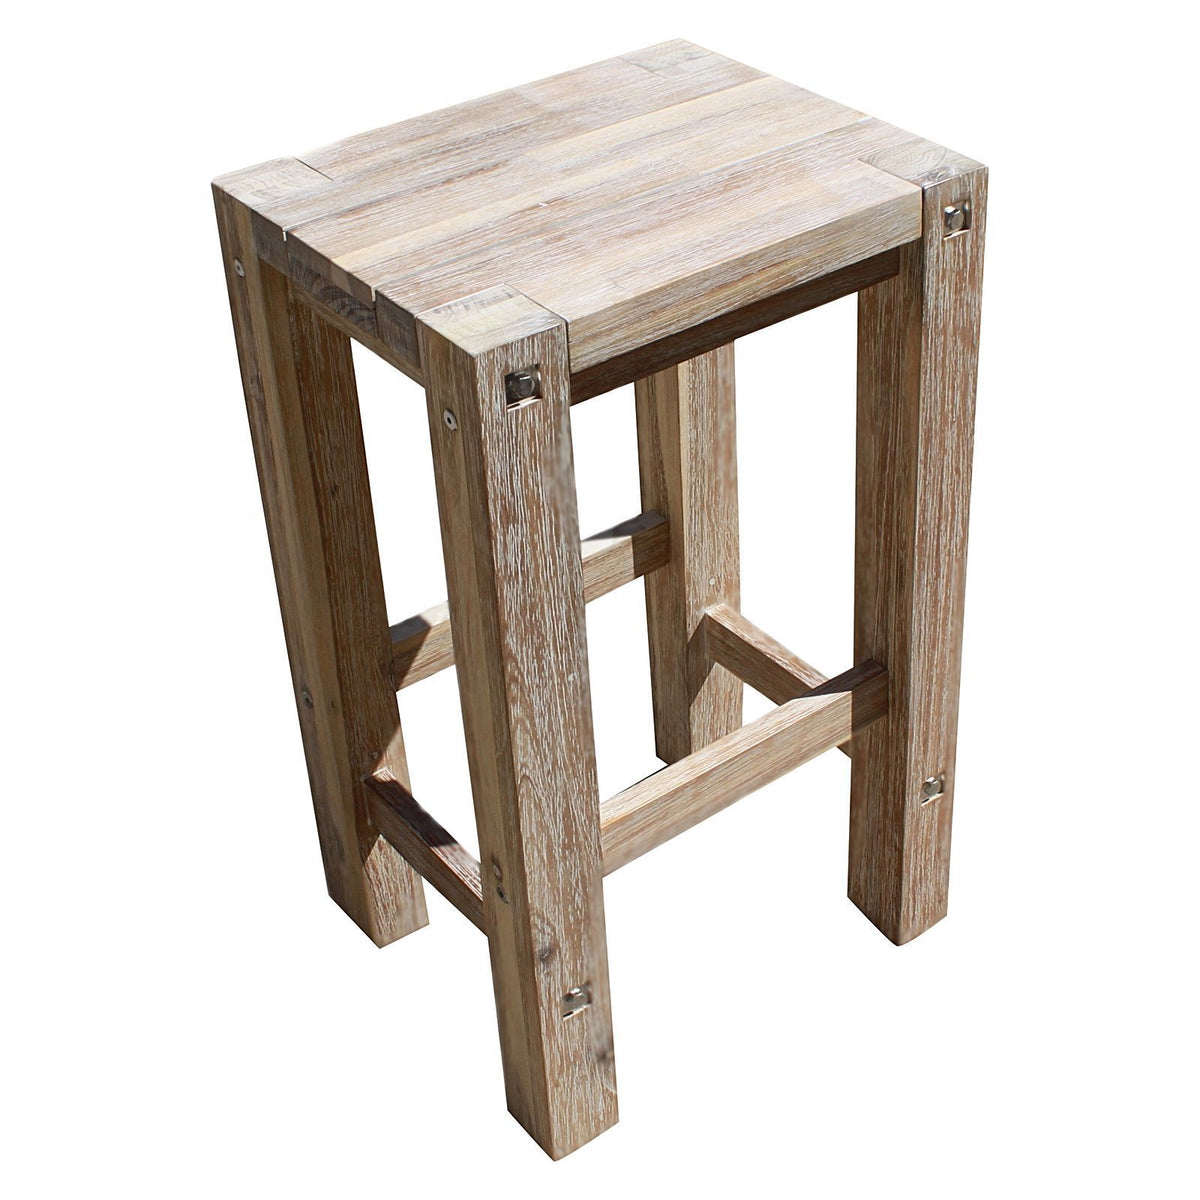 Sturdy Outdoor Bar Stool, White Brush - Outdoor Living Essentials